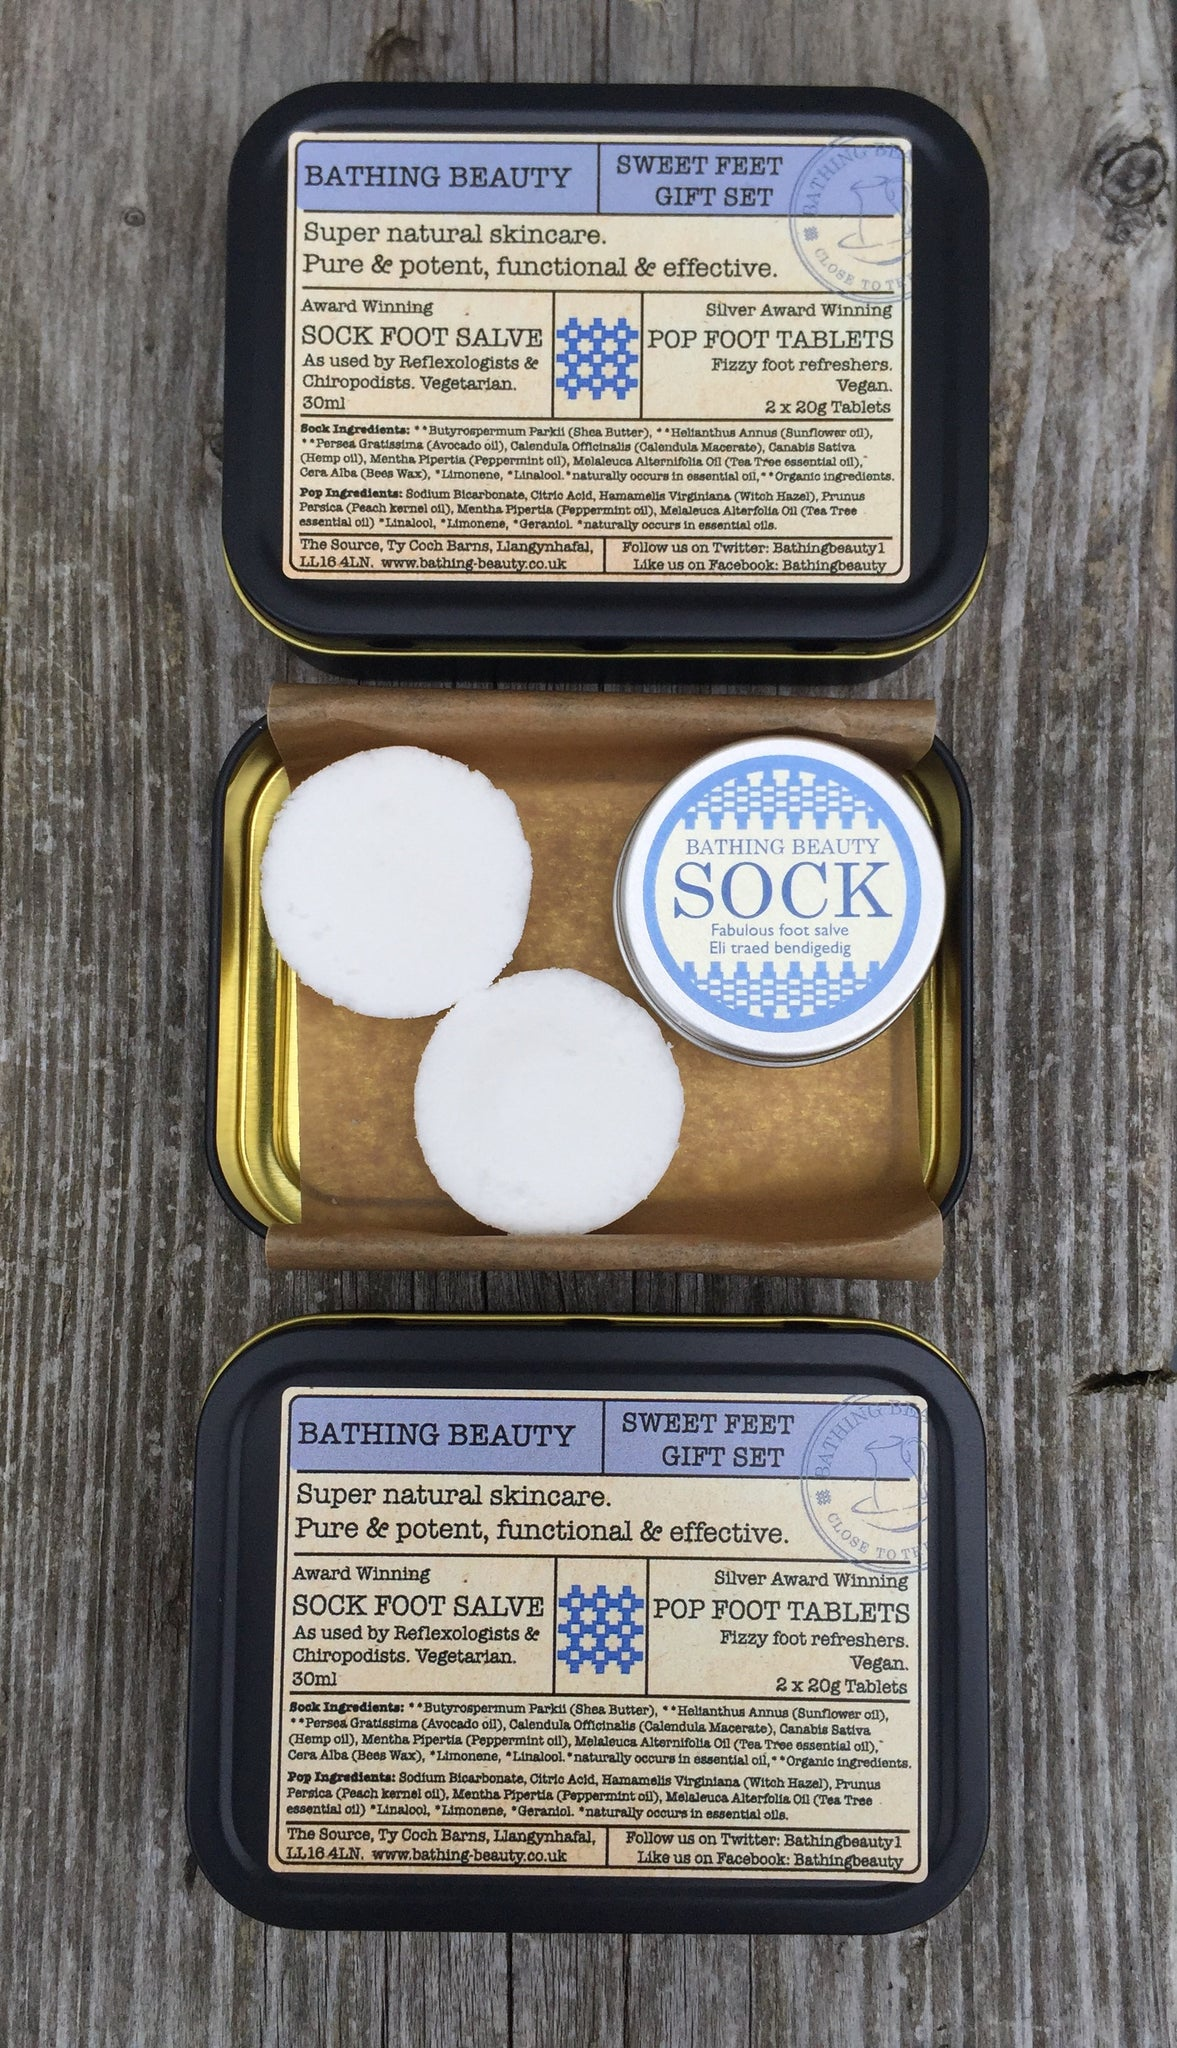 Footcare set - Foot bath and foot salve